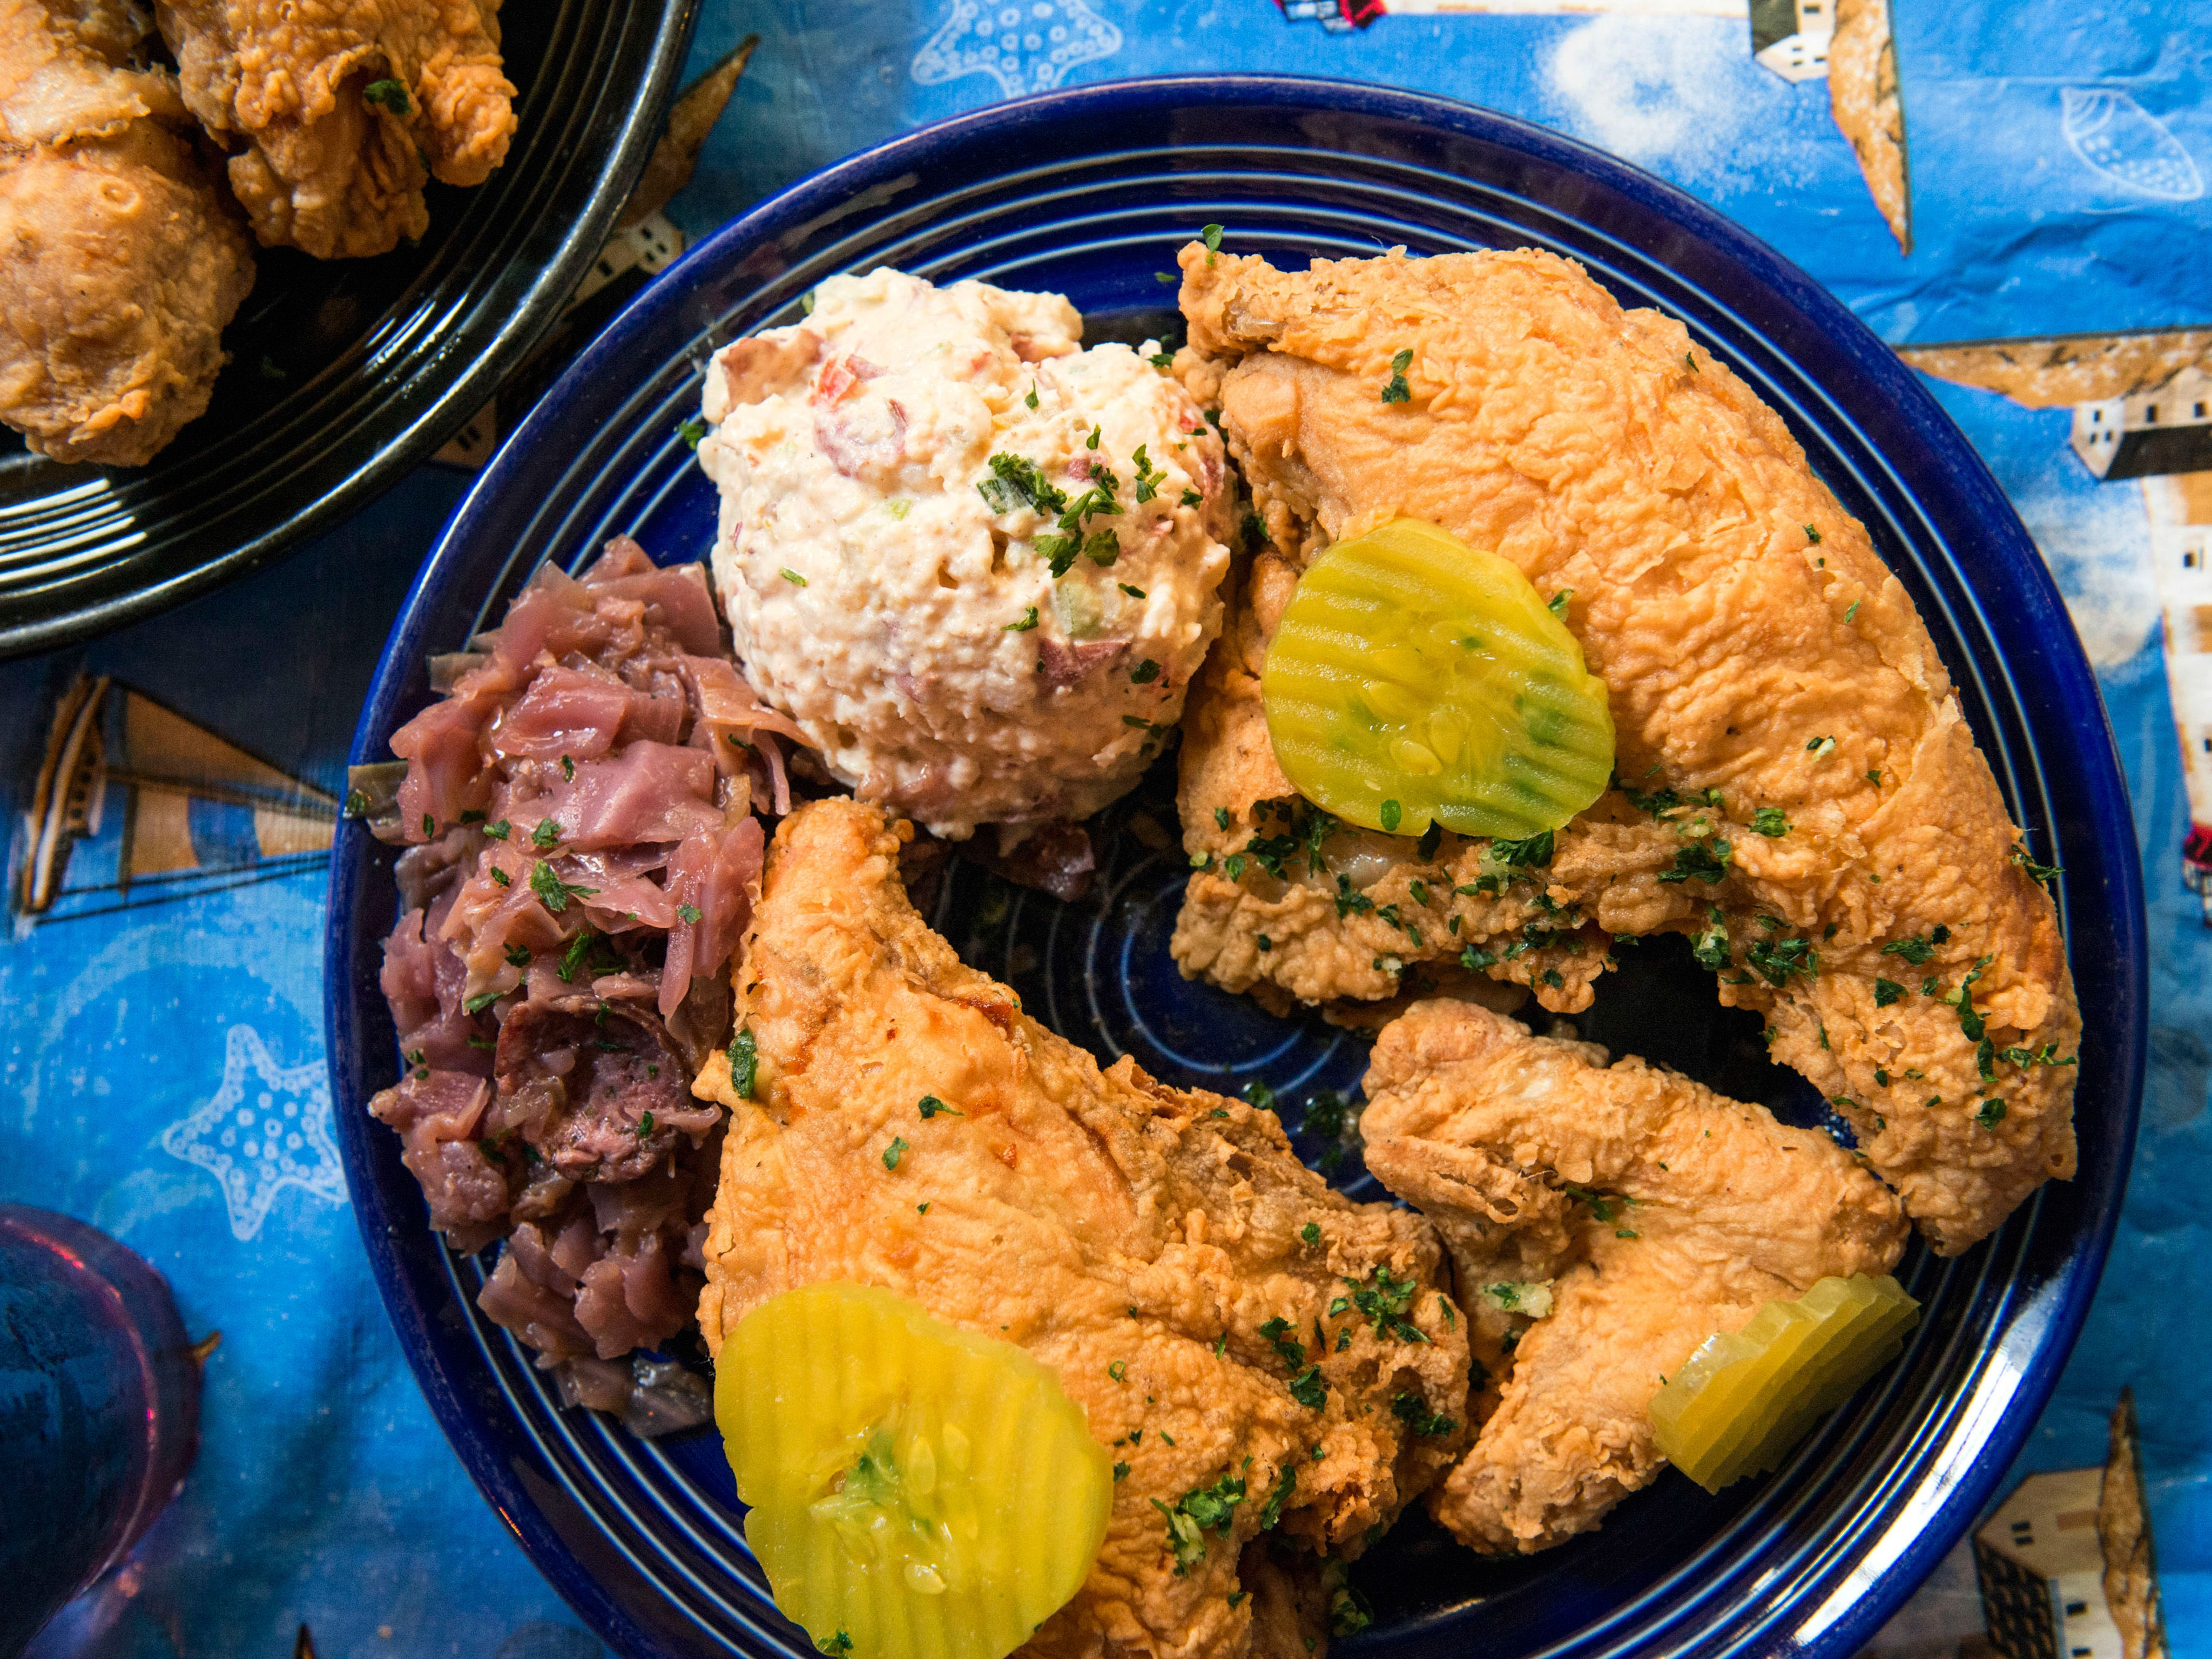 Jacques imos fried chicken recipe chicken recipes food jacques imos fried chicken chicken recipes food networkfried forumfinder Images